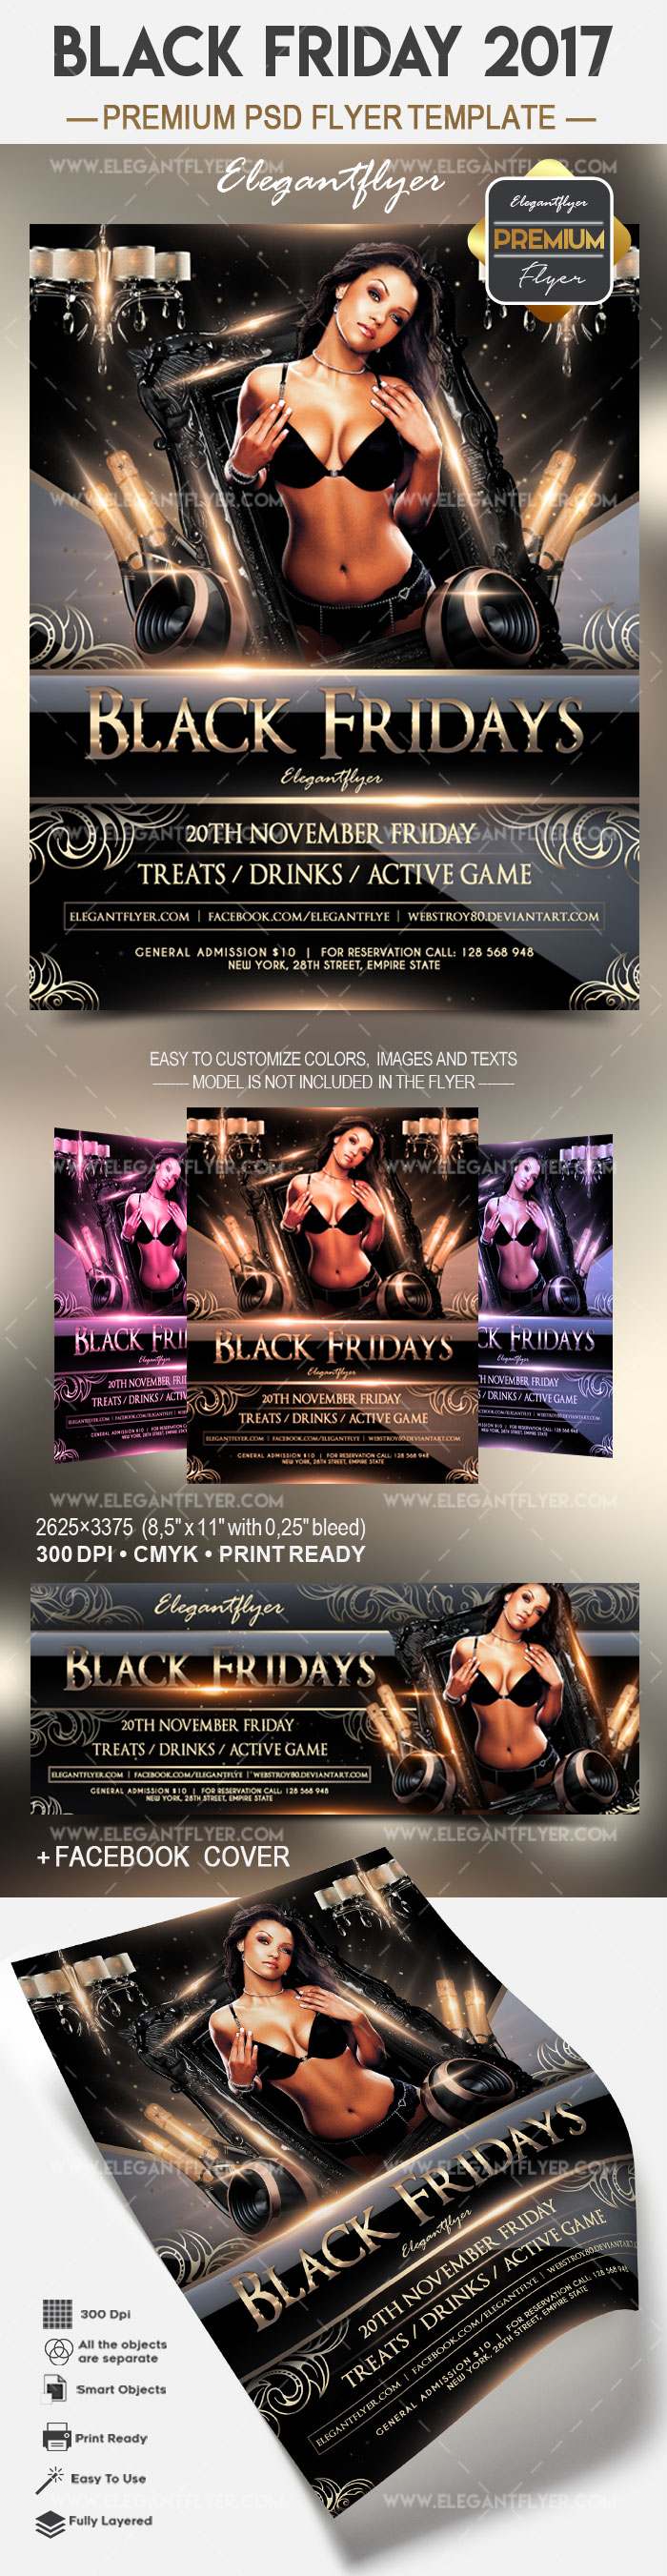 Black friday 2017 – Flyer PSD Template